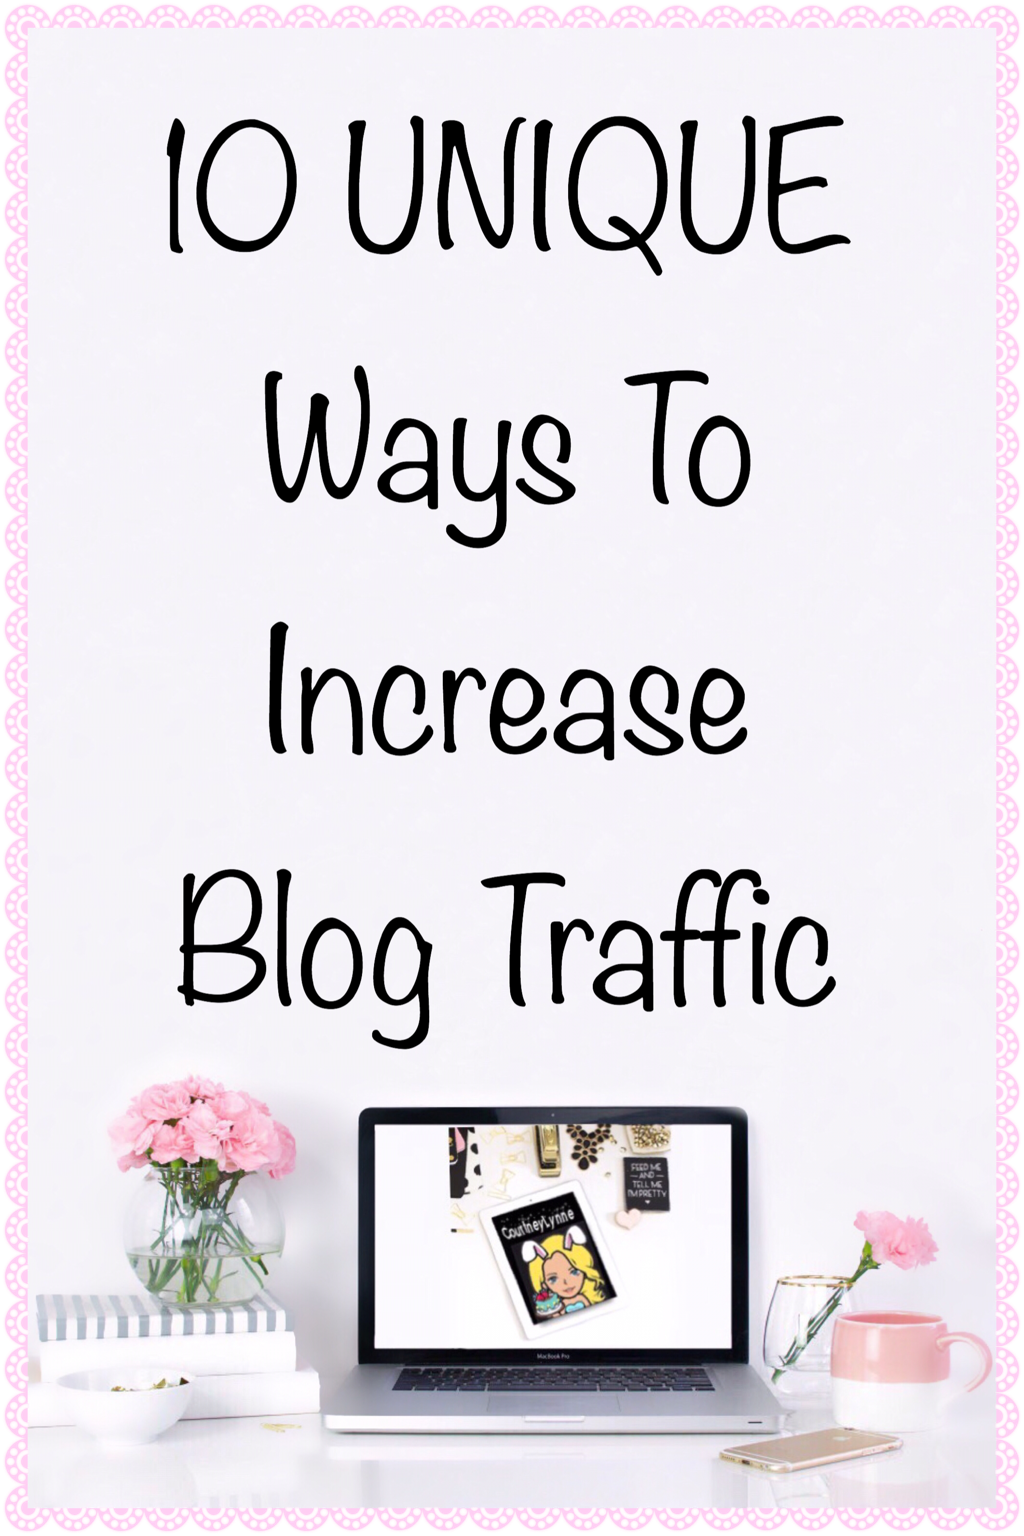 10 UNIQUE WAYS TO INCREASE BLOG TRAFFIC